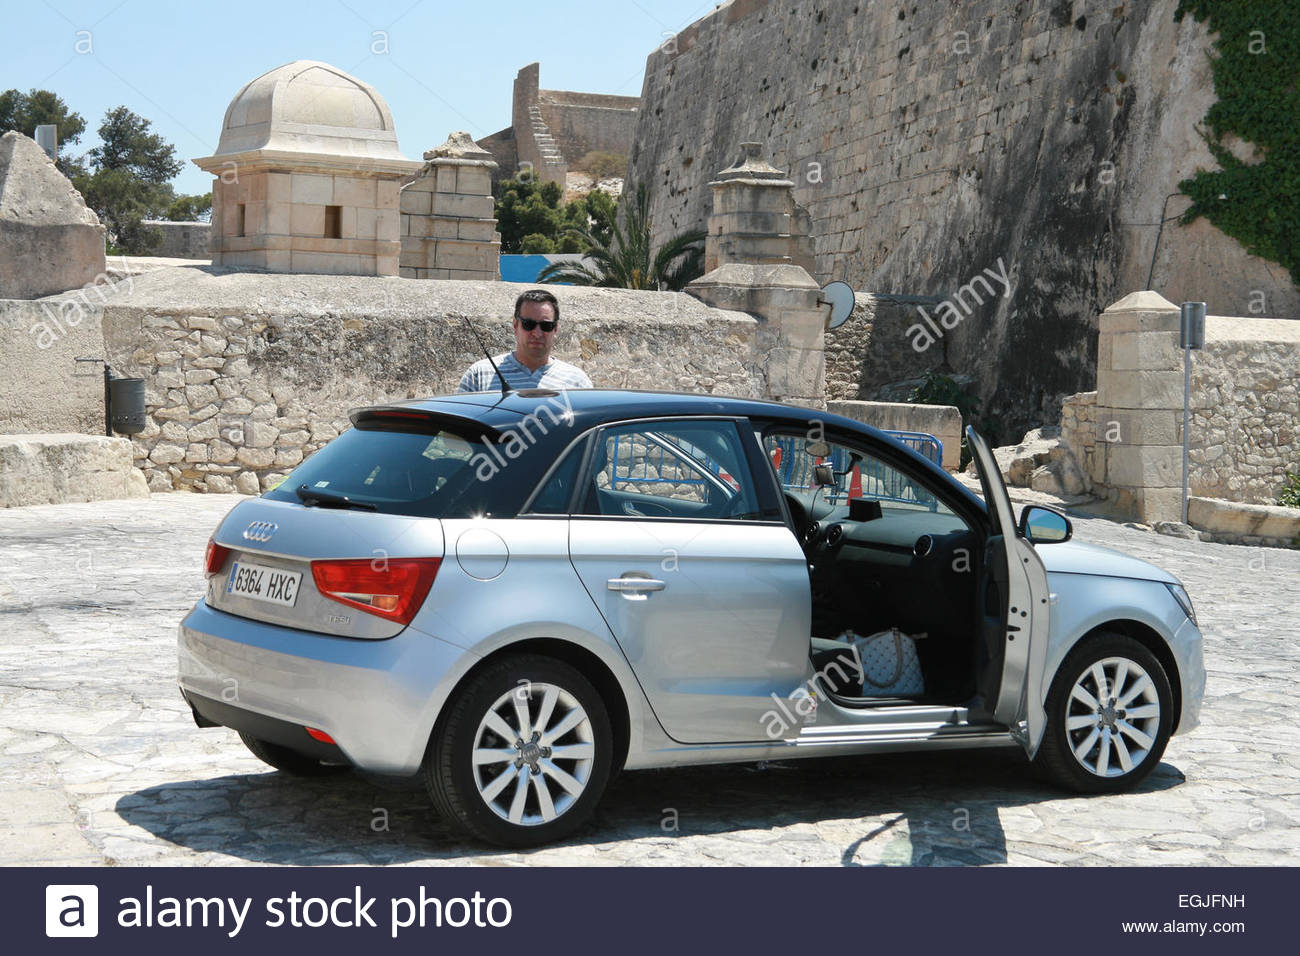 Audi Car With The Door Open And The Driver Stock Photo Royalty - Audi car and driver